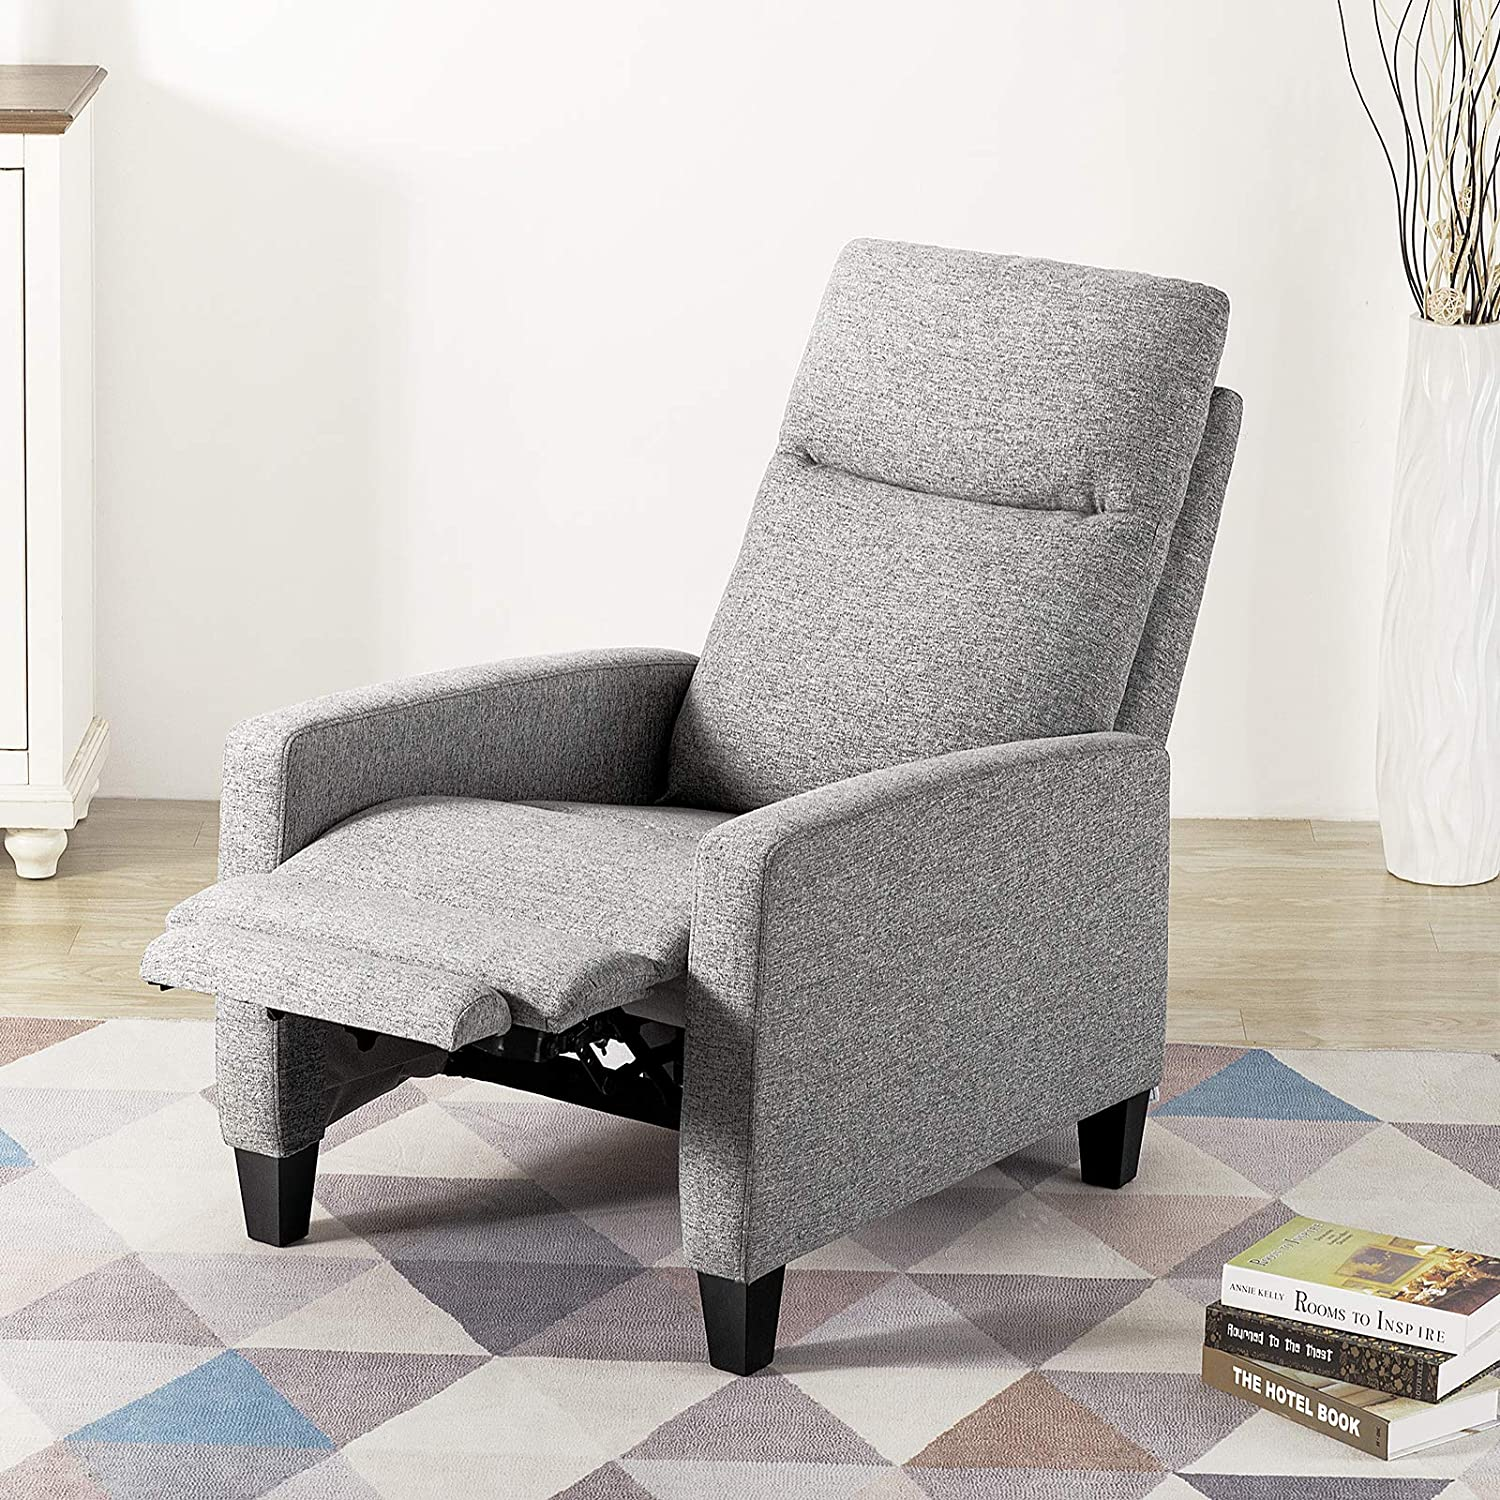 Vonanda Fabric Recliner Chair Adjustable Reading Chair for Living Room Home Theater Seating Modern Chaise Lounge Chair(Grey,Yellow)…